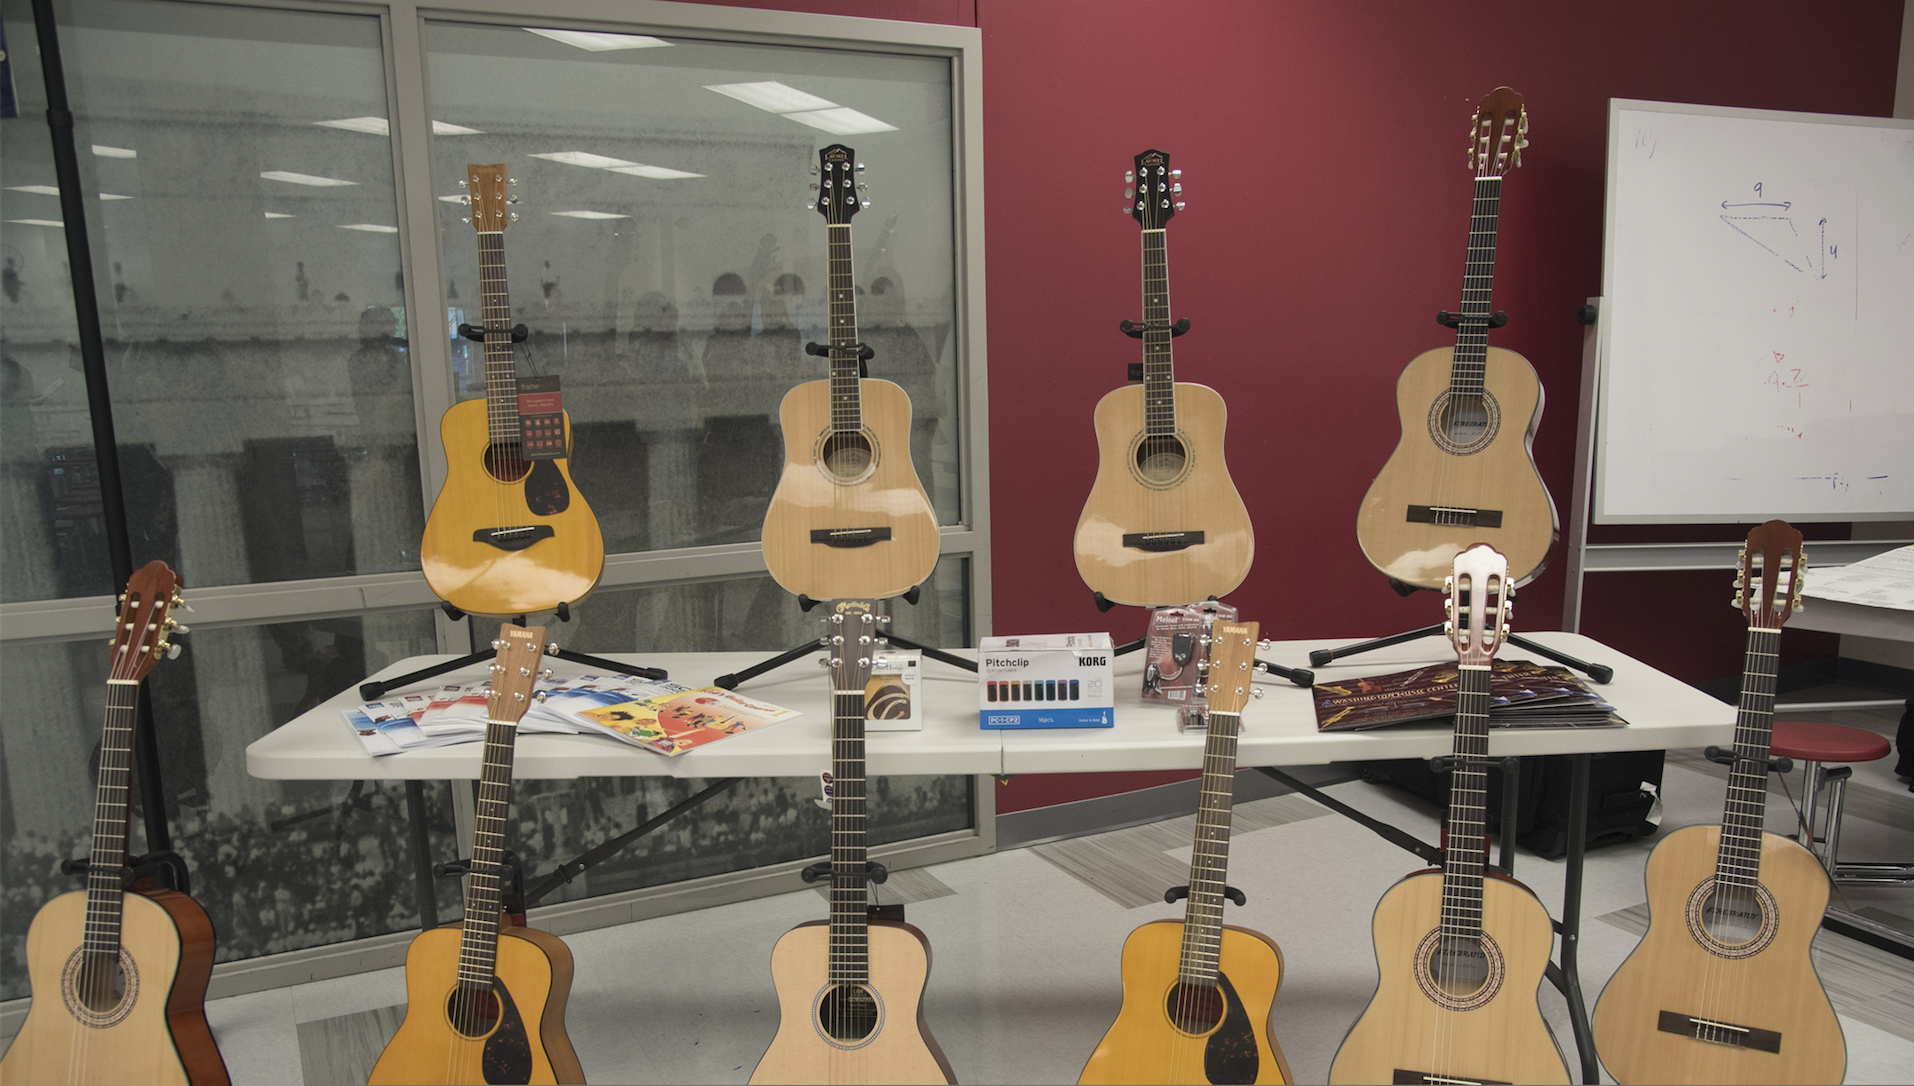 Guitars donated at NAMM Day of Service